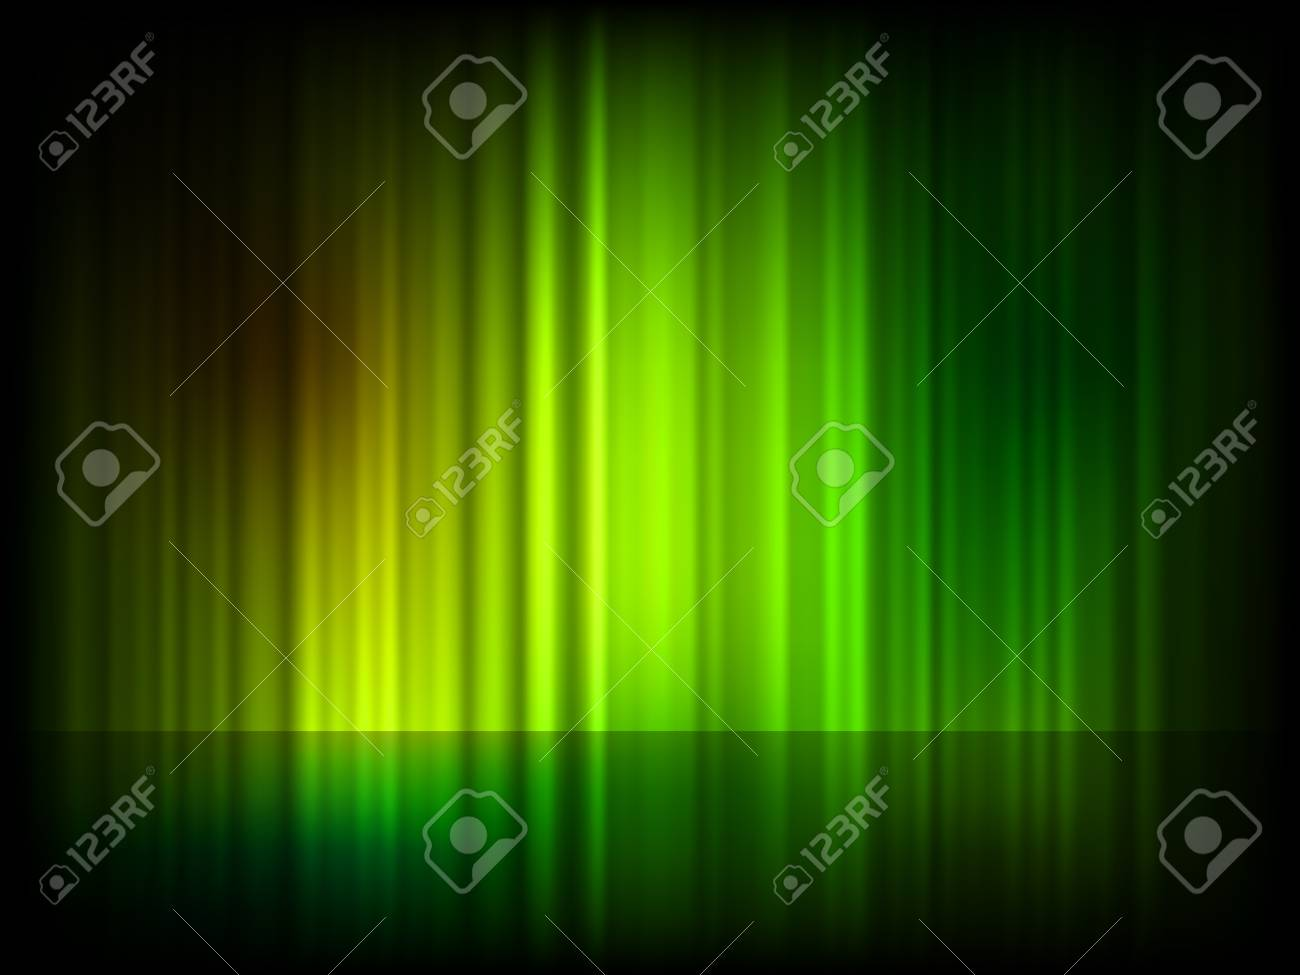 Green abstract shiny background Stock Vector - 29453889